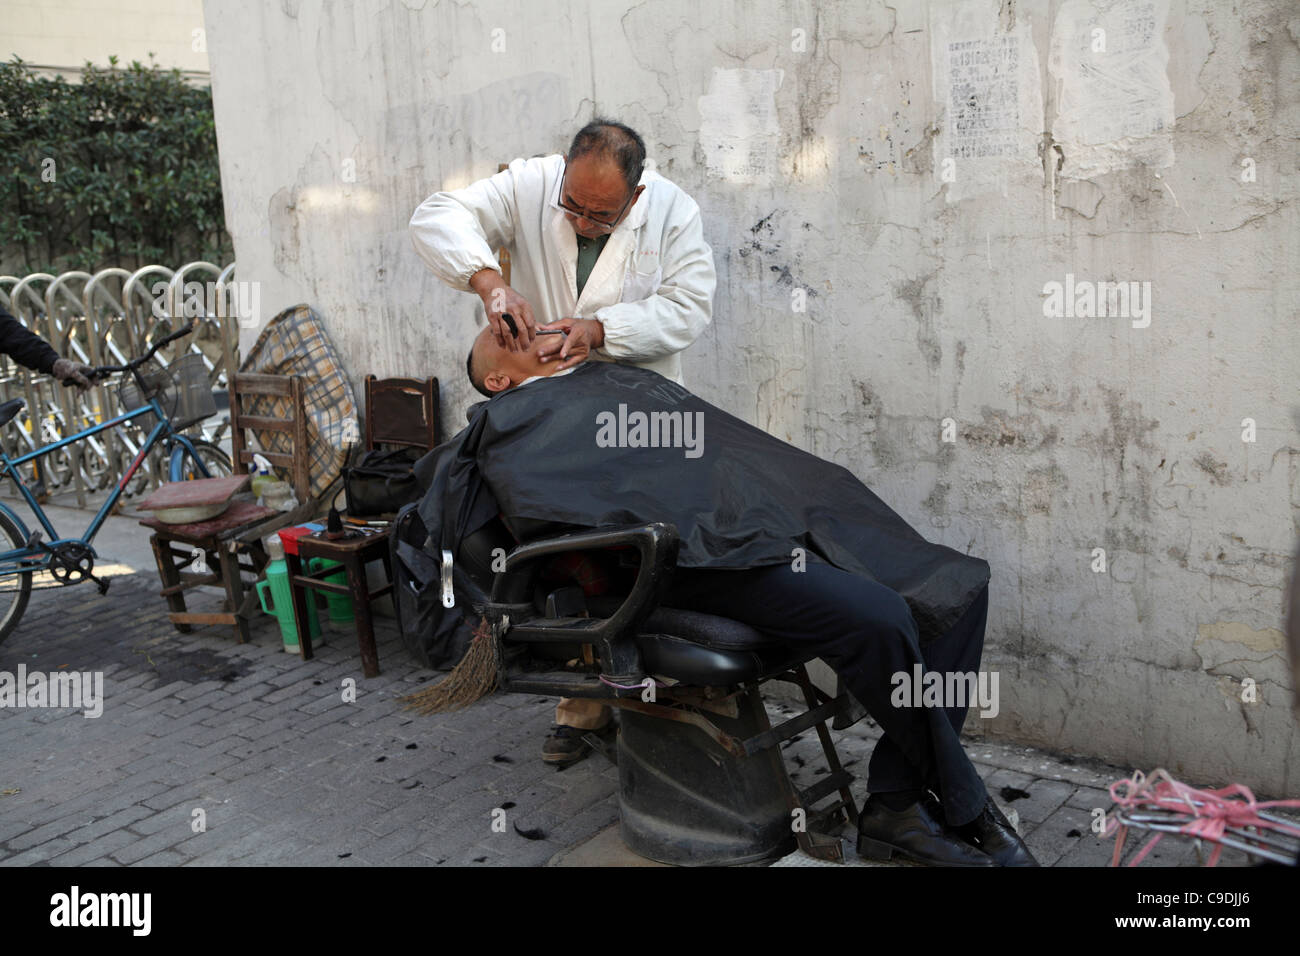 Barber giving client a shave outside on pavement, street market Shanghai, China, Asia - Stock Image